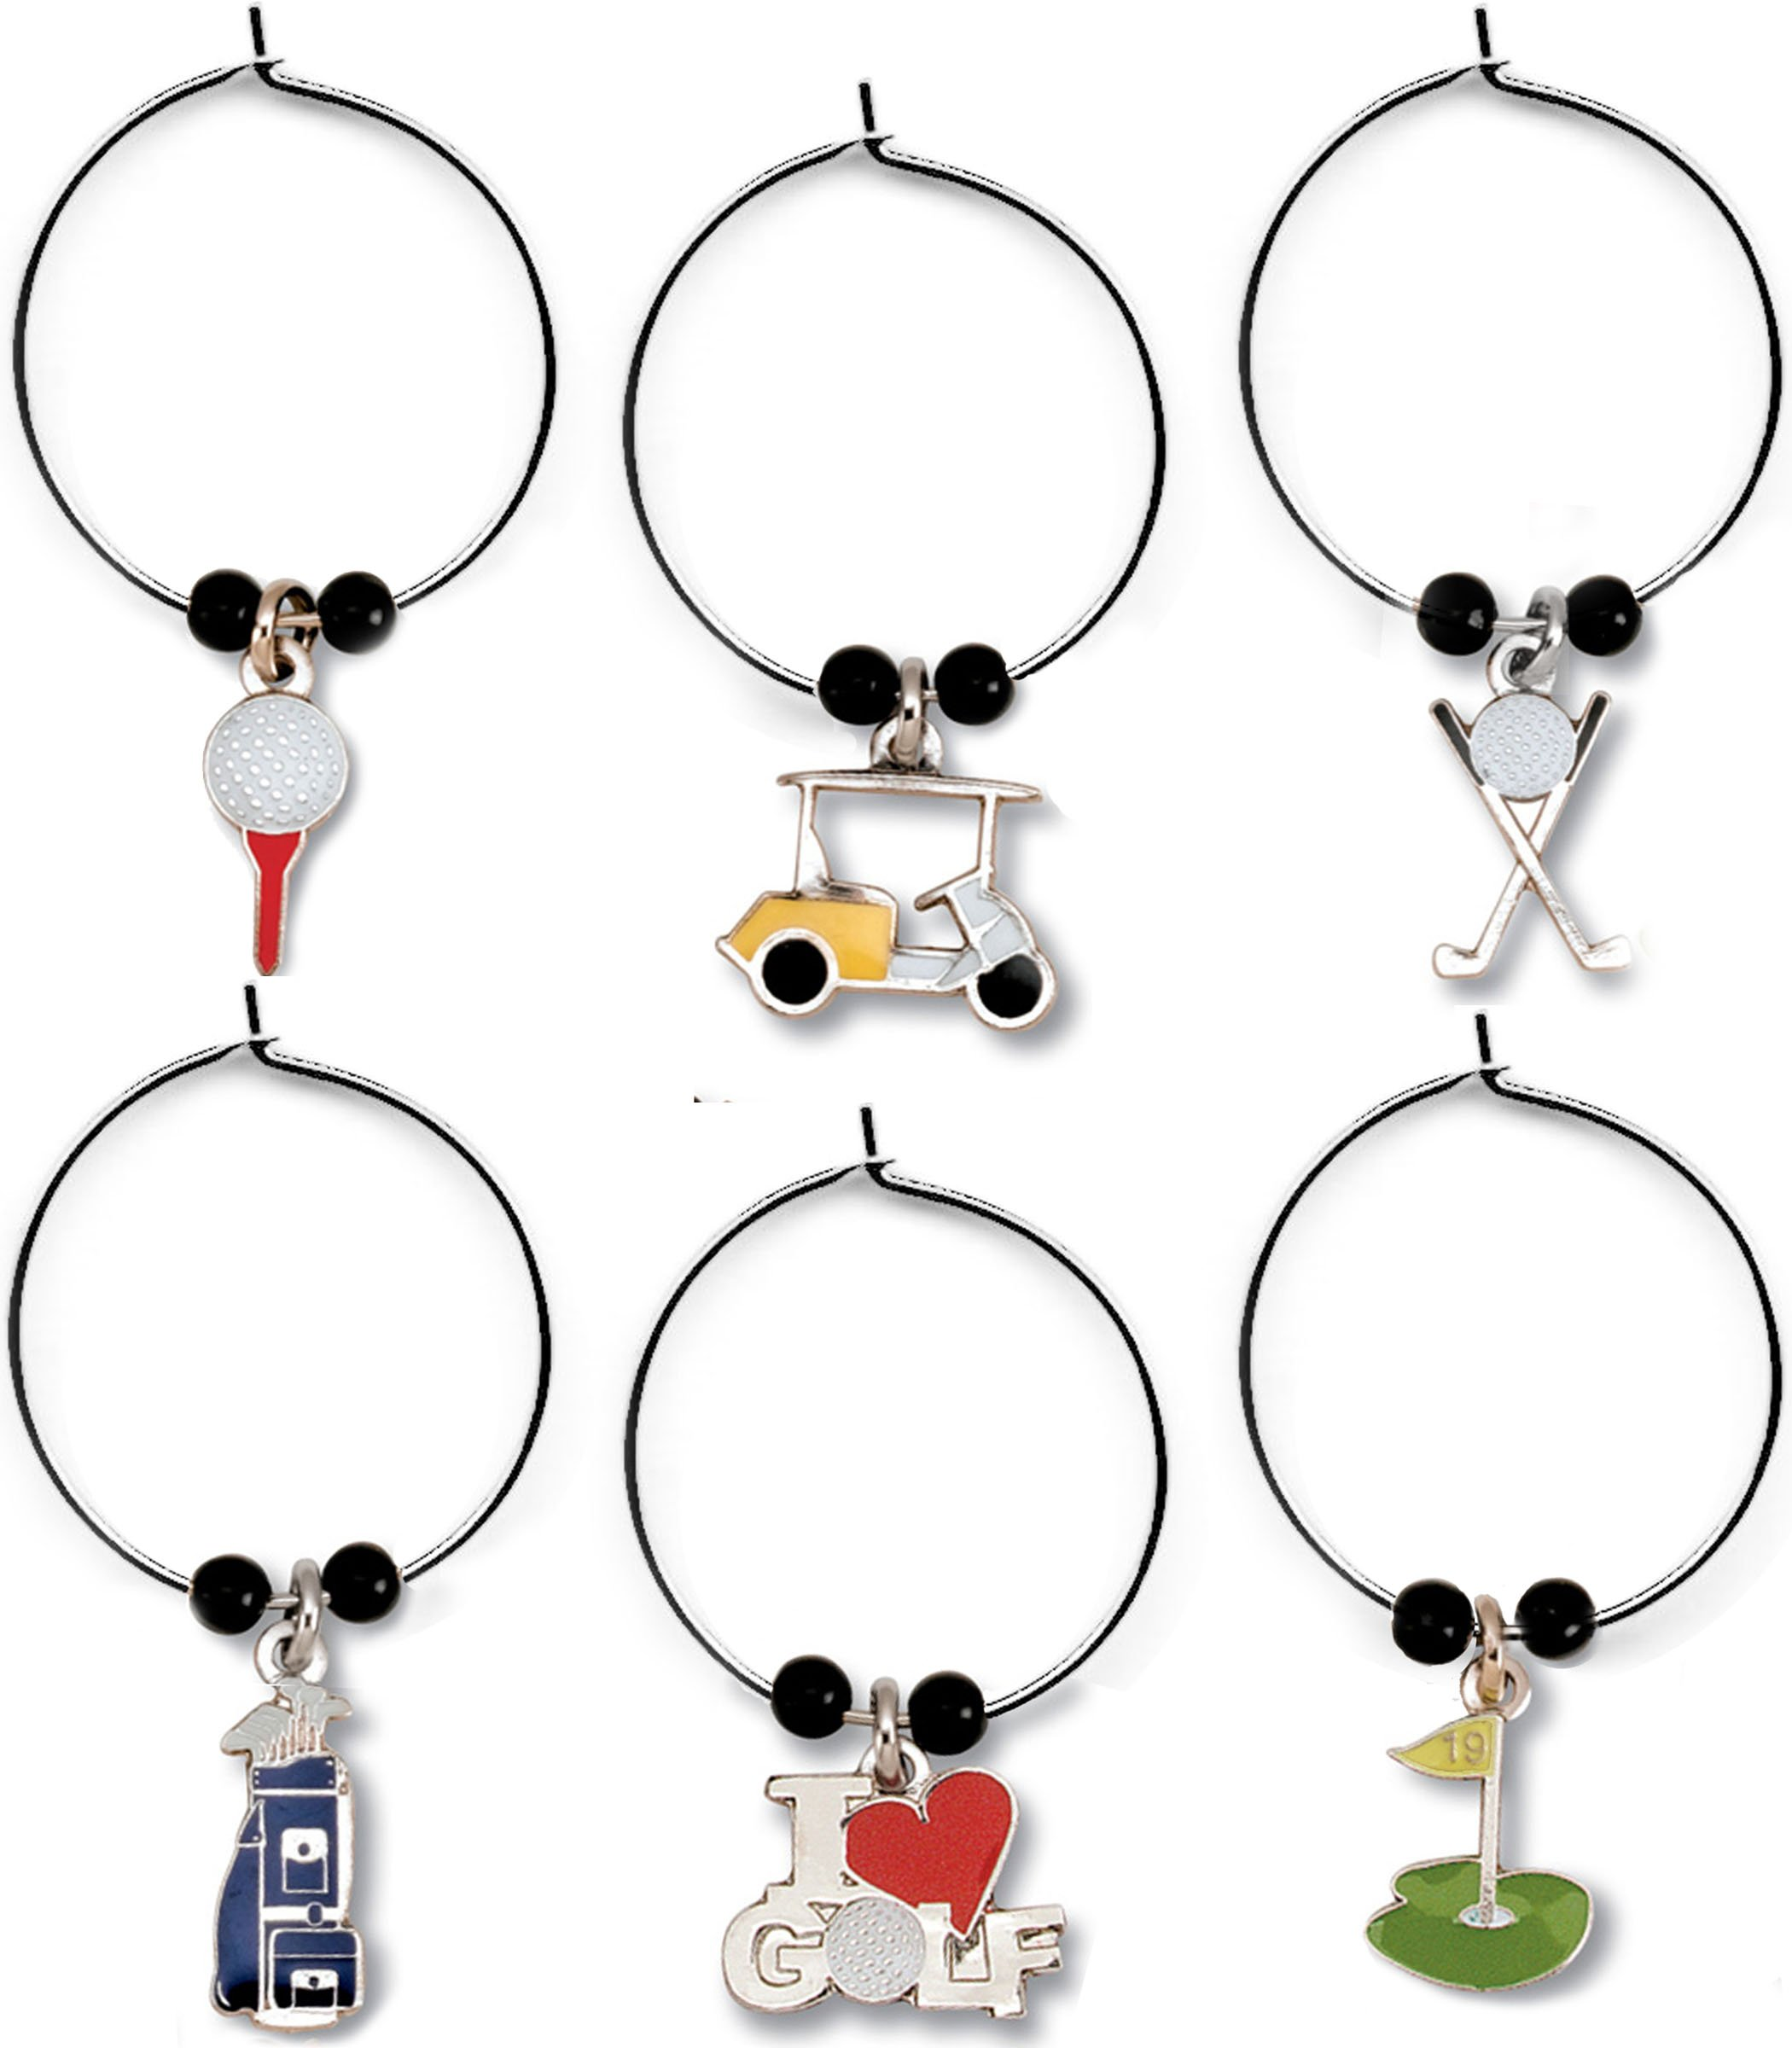 Golf Wine Glass Charms Set of 6 Silver Tone Enameled Themed Charms for the 19th Hole in a Black Organza Bag for Giving and Storage Great Gift for Women Golfers Includes Ball on Tee, Cart, Clubs, Bag